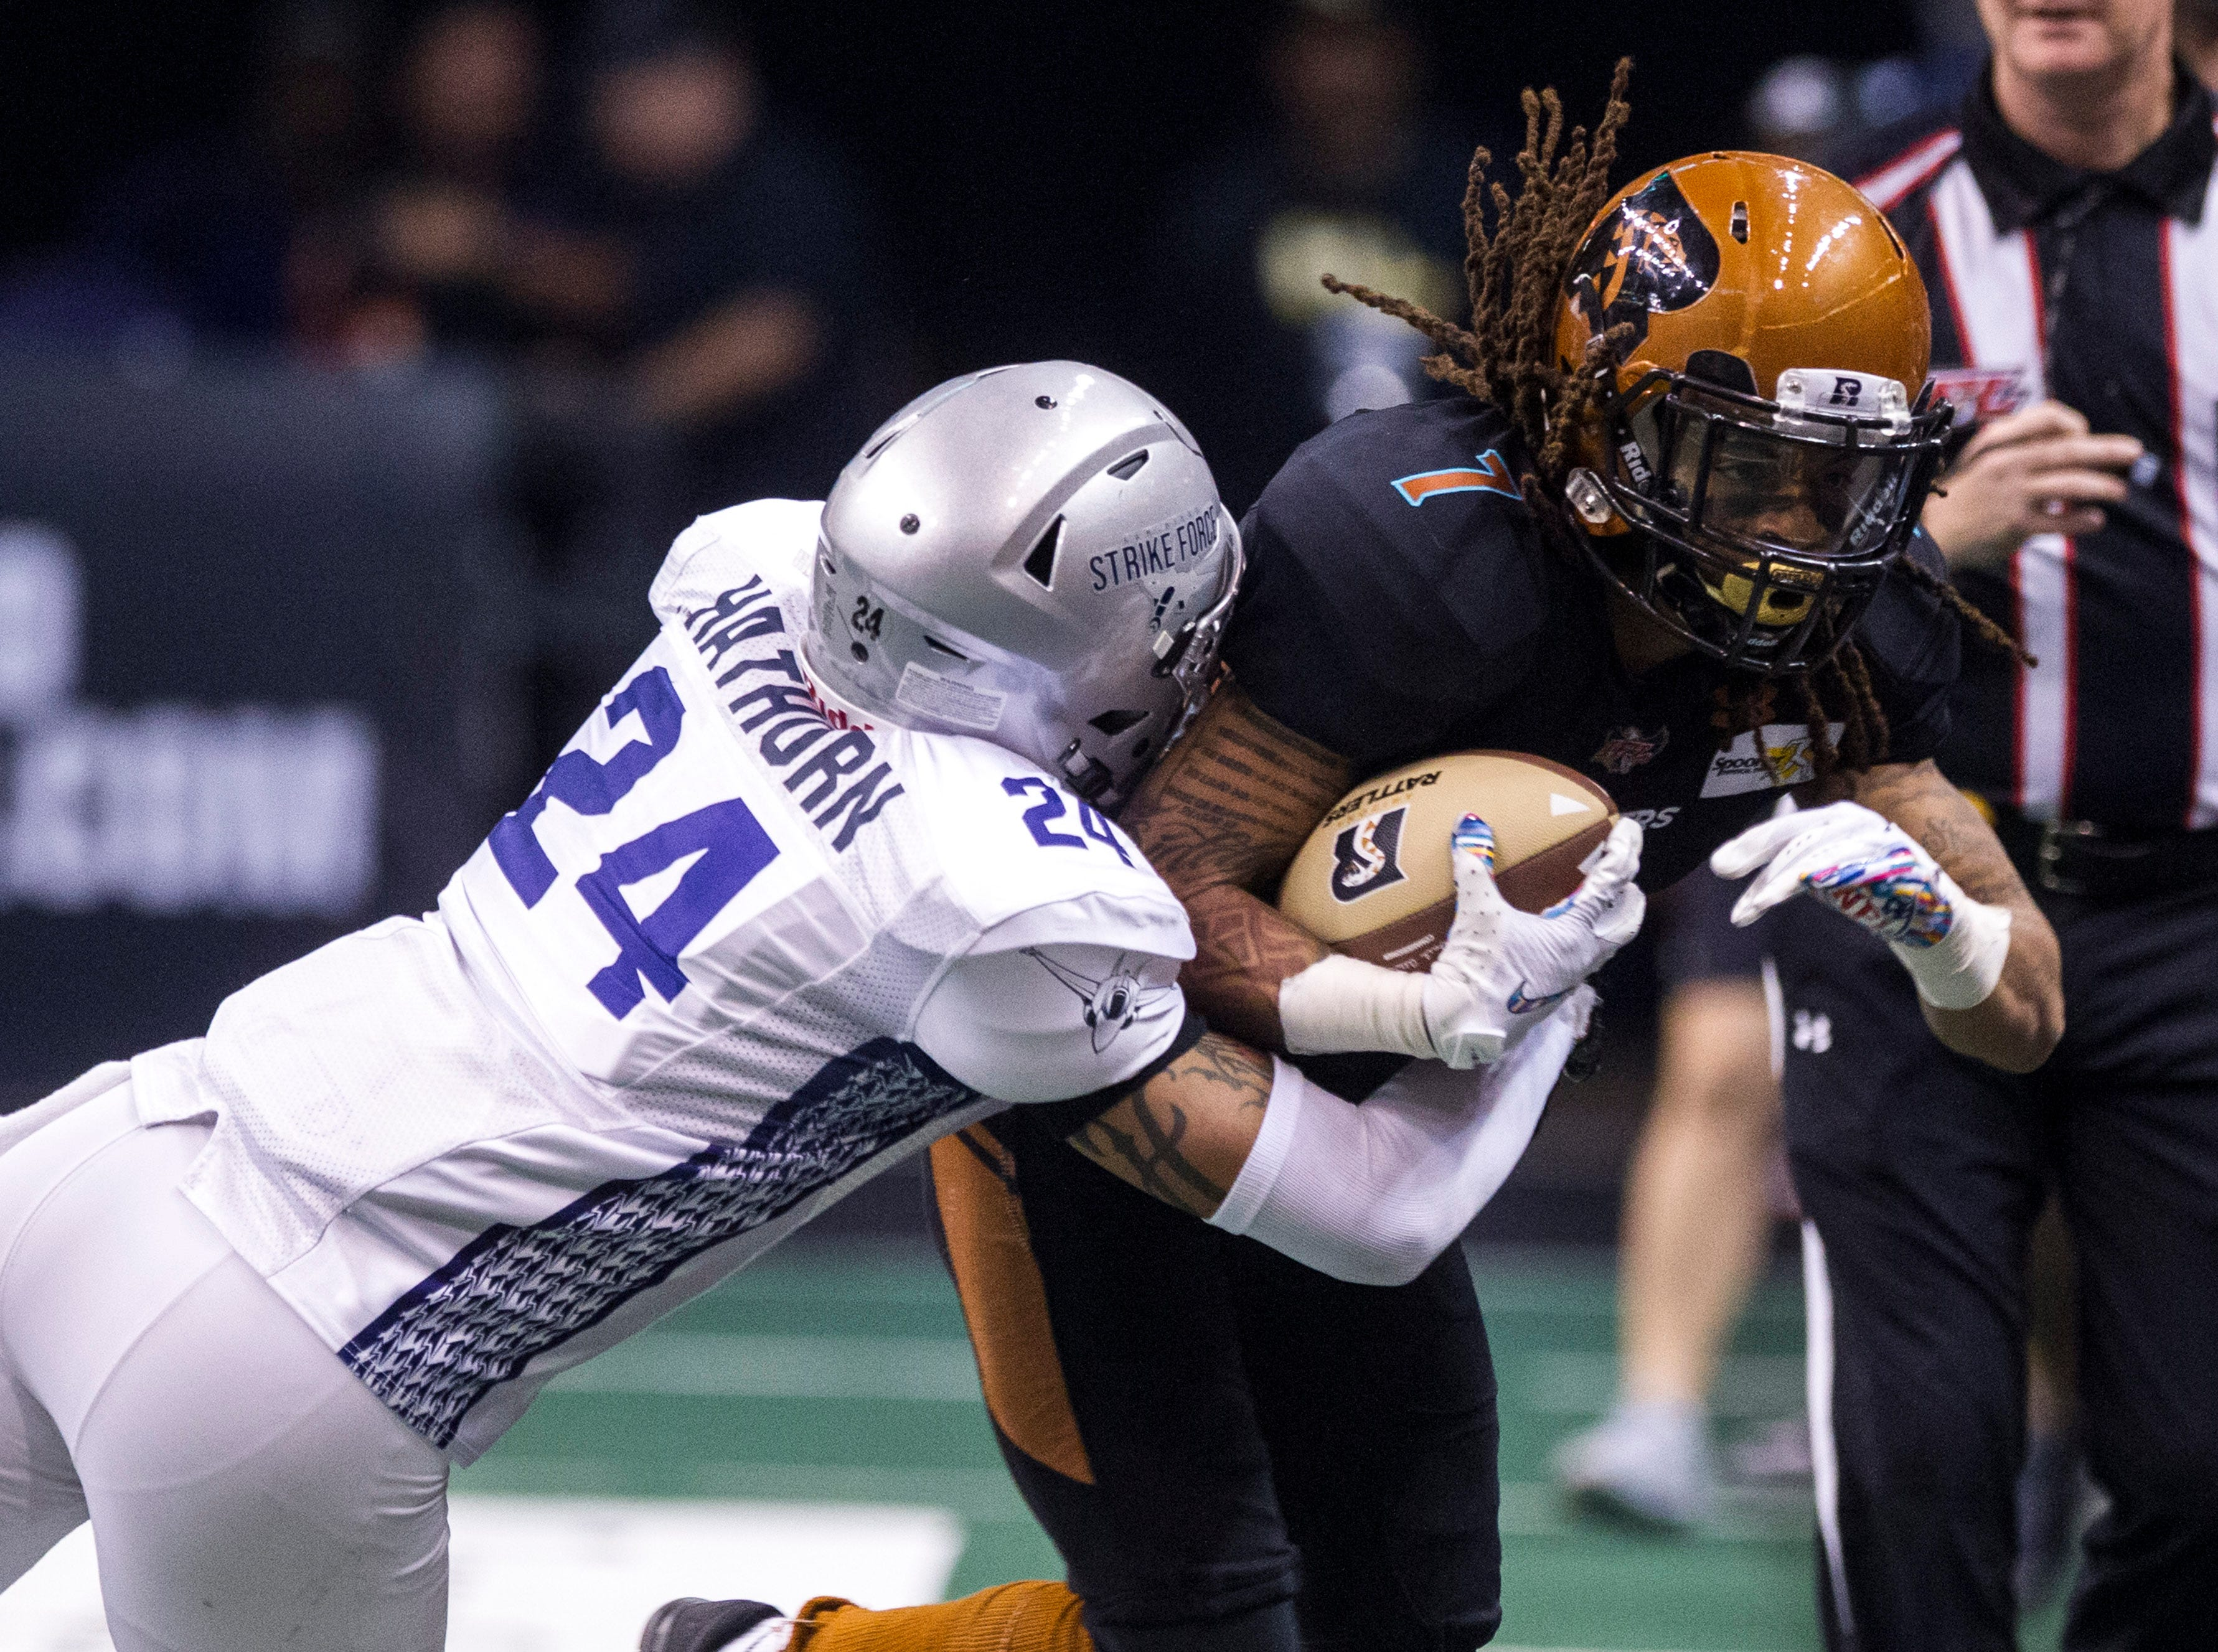 Arizona Rattlers' Sheldon Augustine (7) gets knocked into the boards by San Diego Strike Force's Deshawn Hathorn (24) during the second half of their game at Talking Stick Resort Arena in Phoenix Friday, April. 6, 2019.